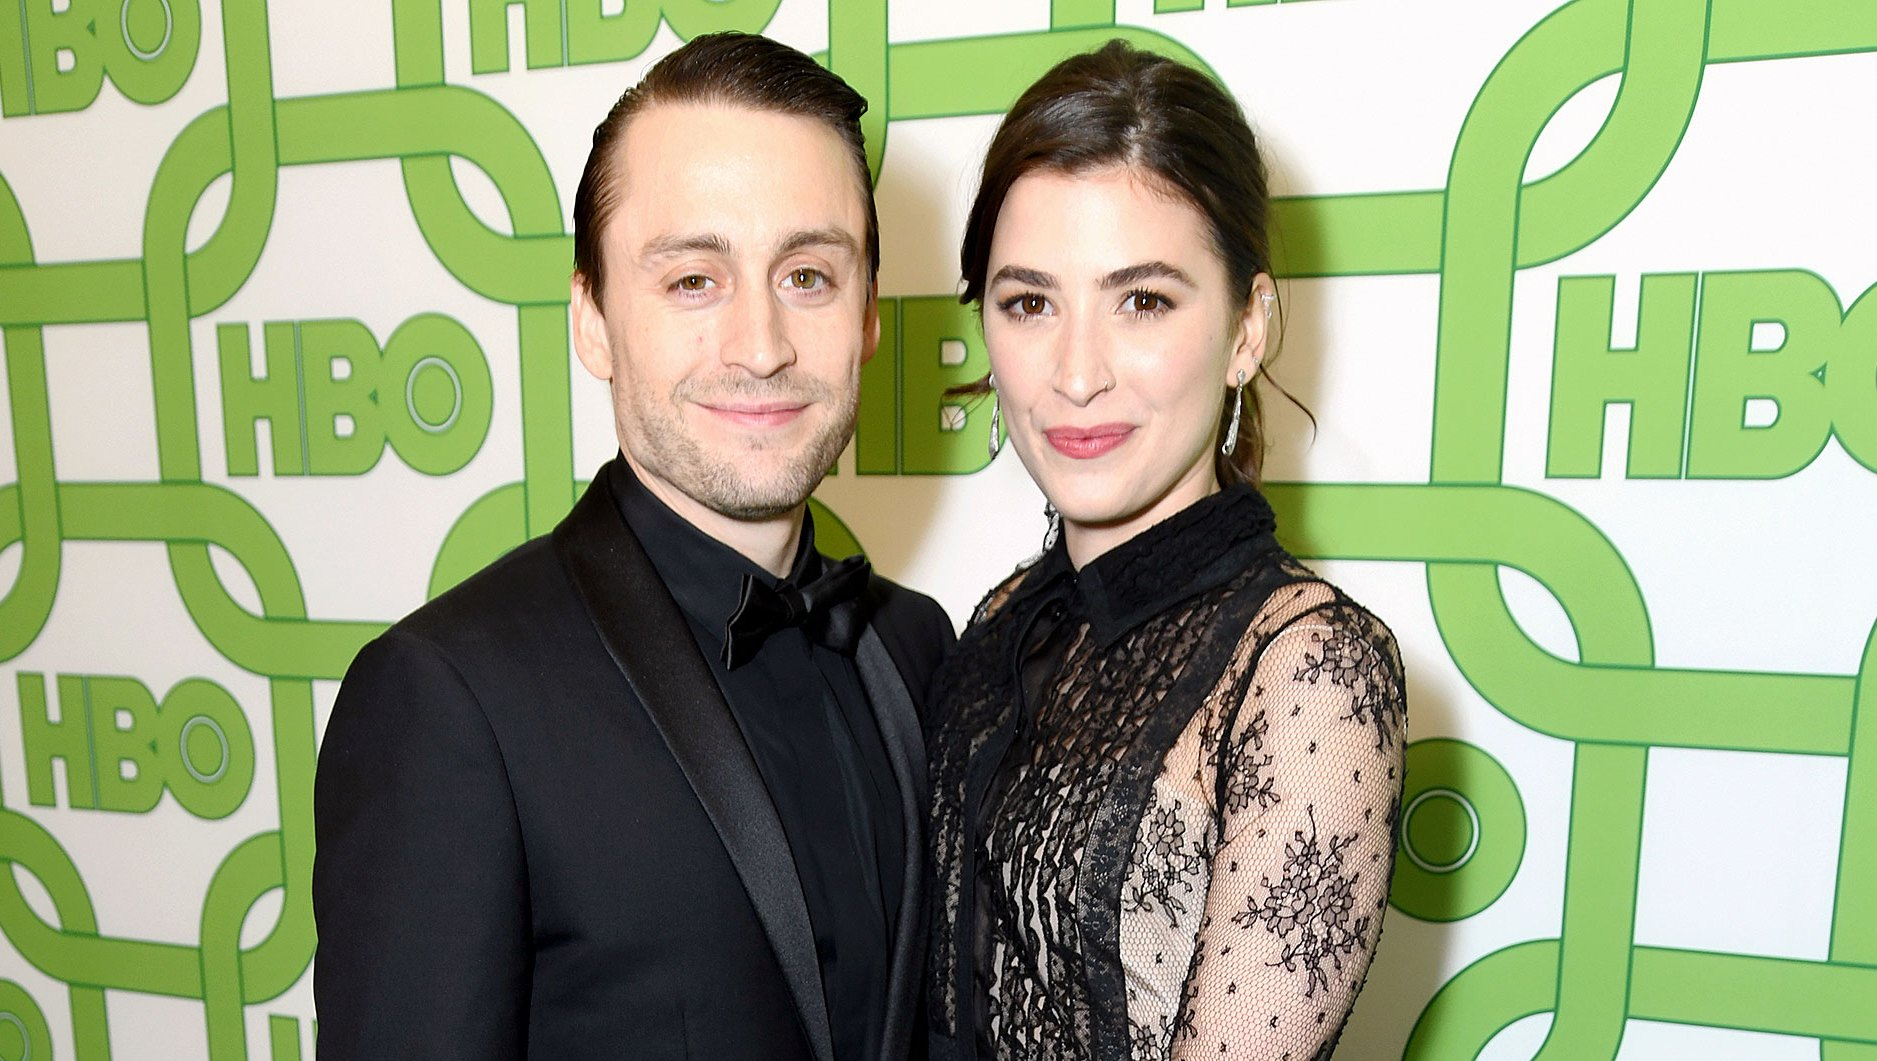 Kieran Culkin and Wife Jazz Charton Are Expecting Their First Child